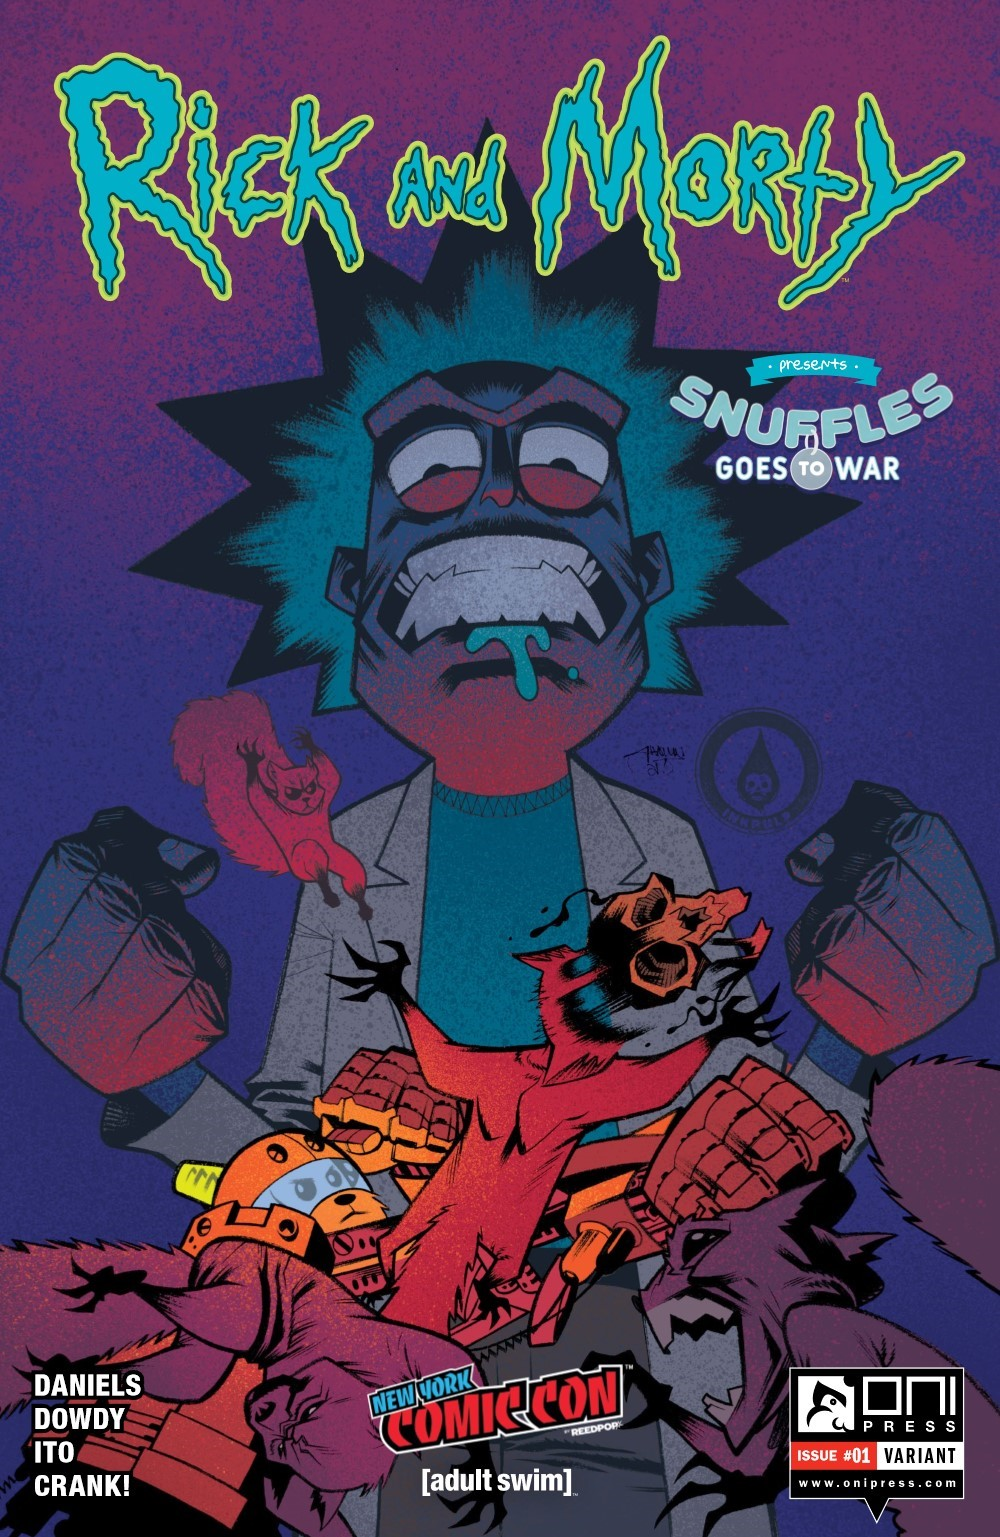 RM-PRES-SNUFFLES-1-REFERENCE-04 ComicList Previews: RICK AND MORTY PRESENTS SNUFFLES GOES TO WAR #1